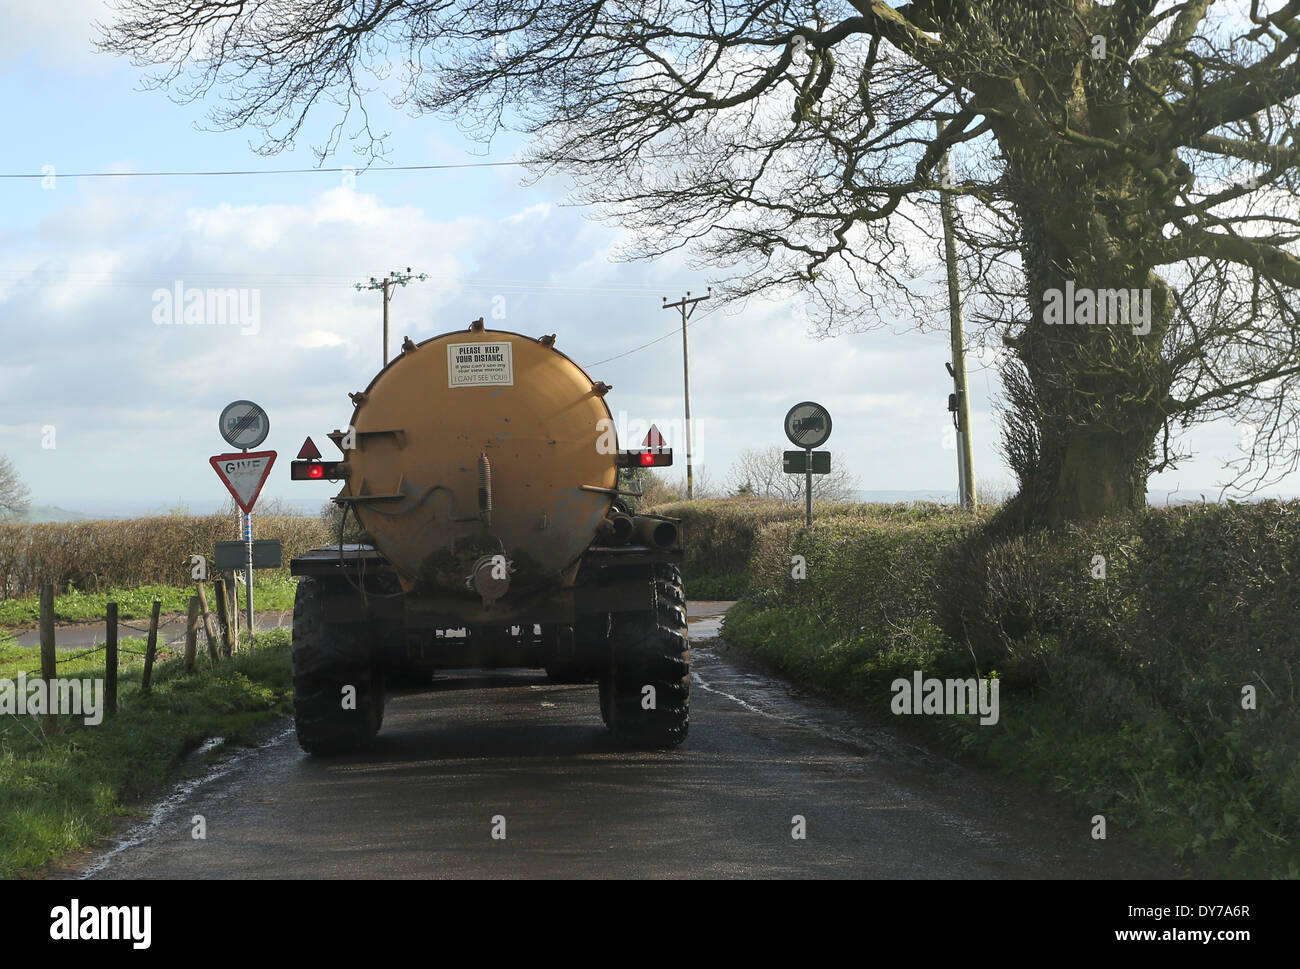 Agricultural sludge tanker filling a small rural road, April 2014 - Stock Image